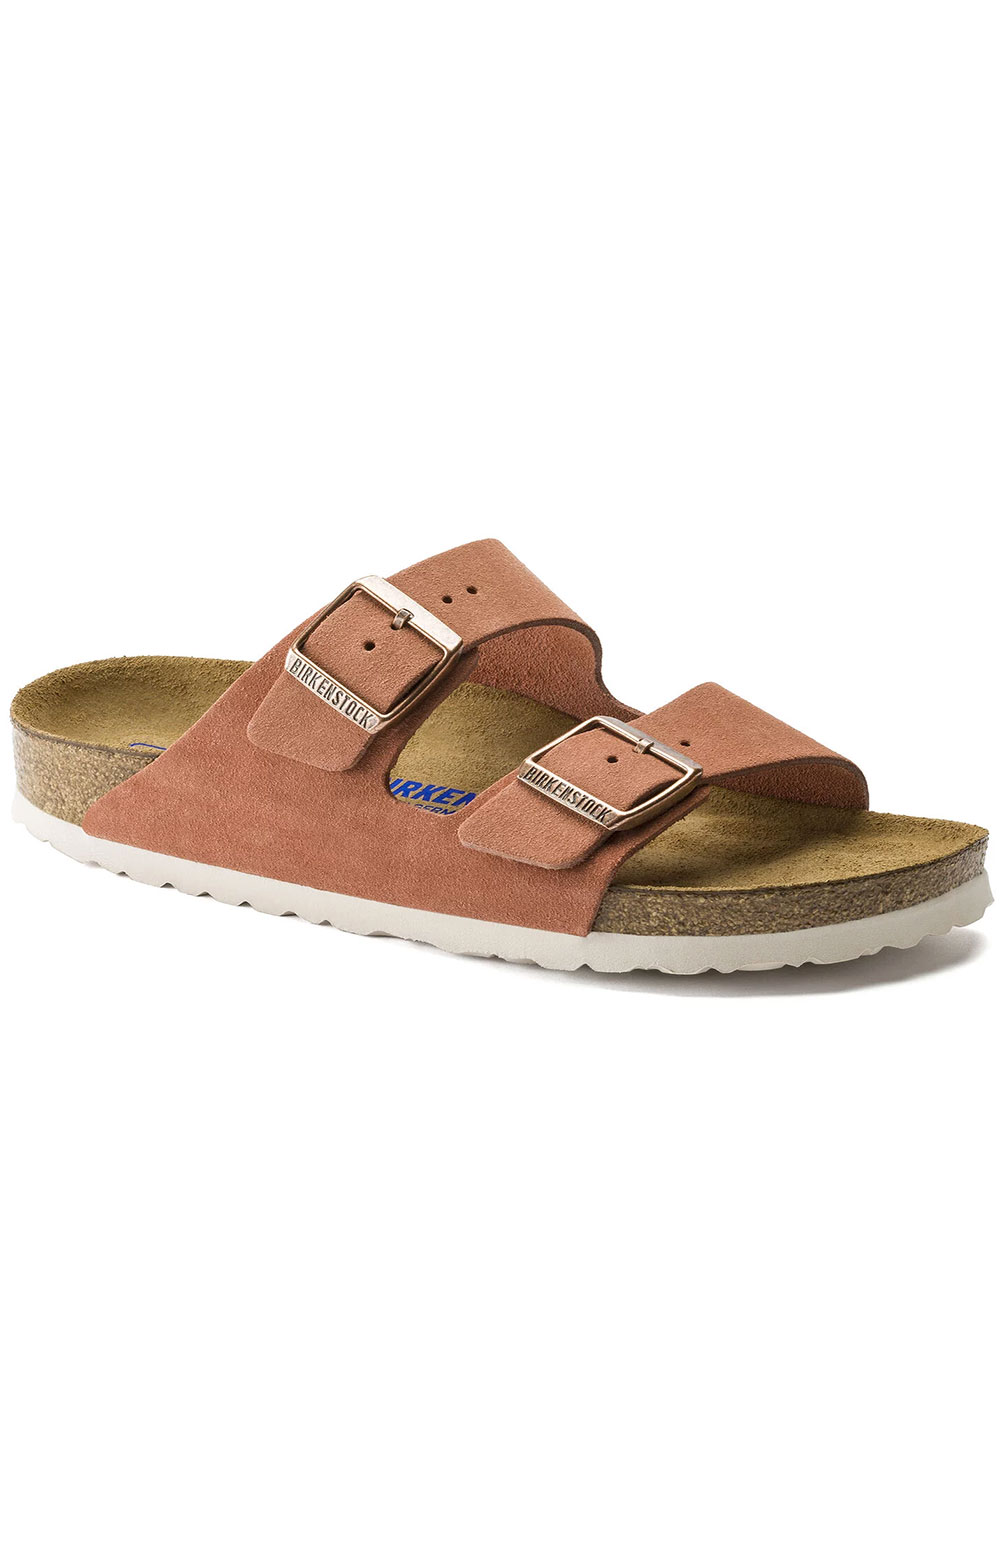 Arizona Soft Footbed Sandals - Earth Red 2